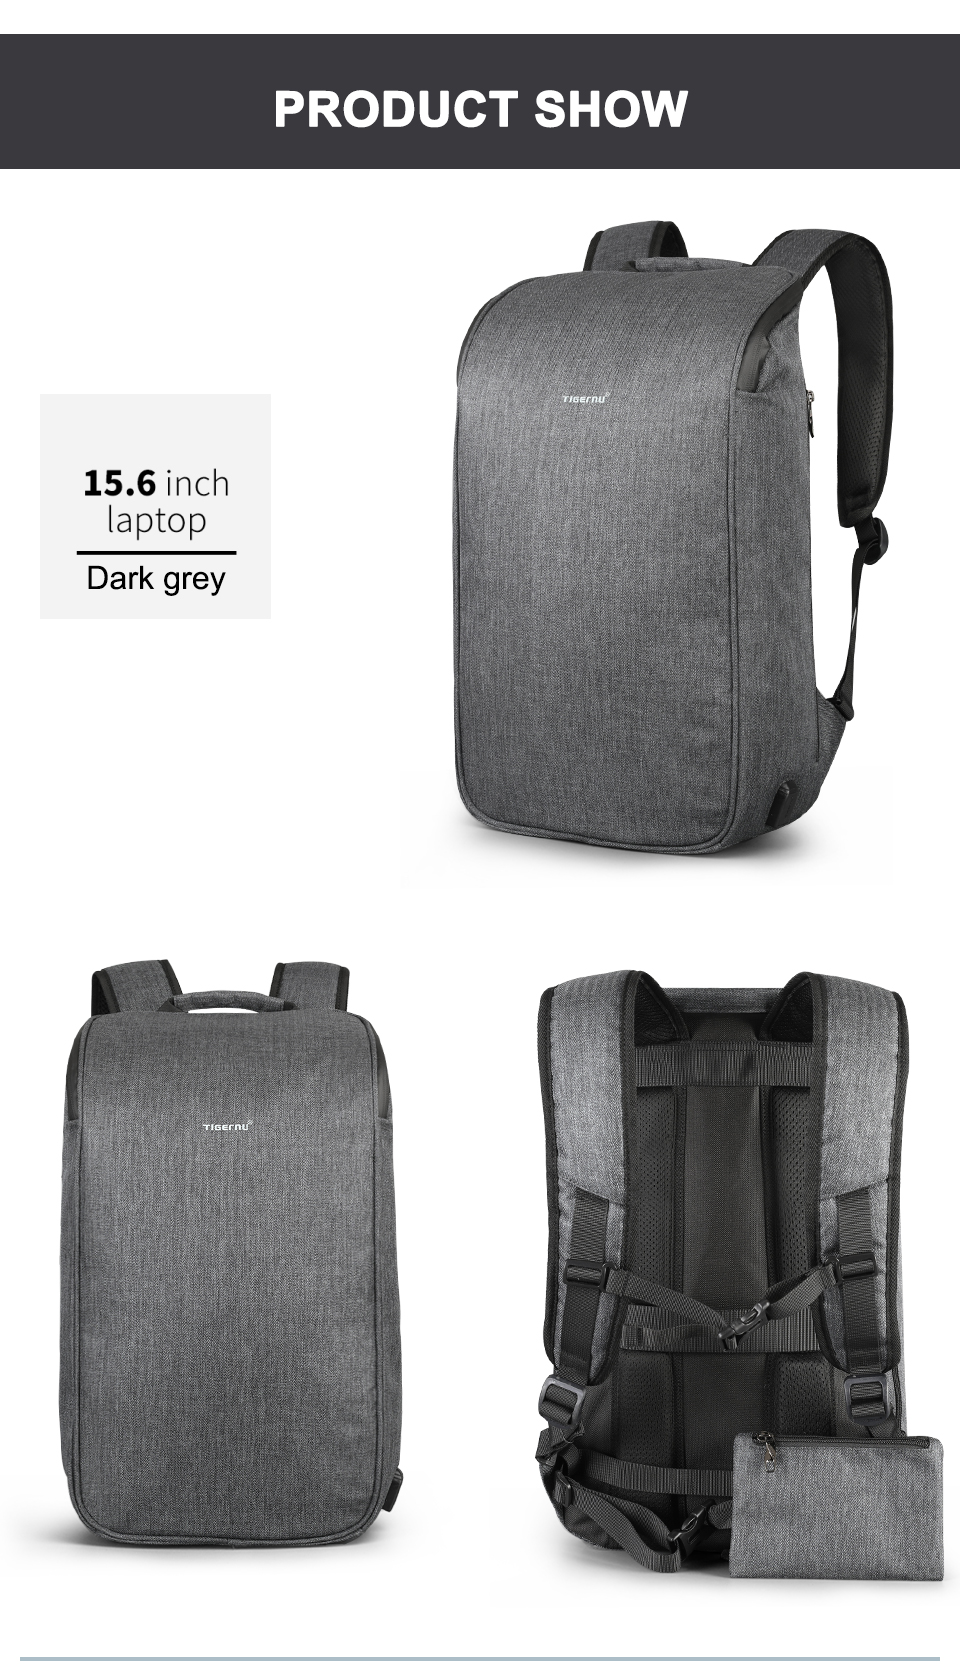 Male Travel Backpack fashion, unique design and trendy grey color